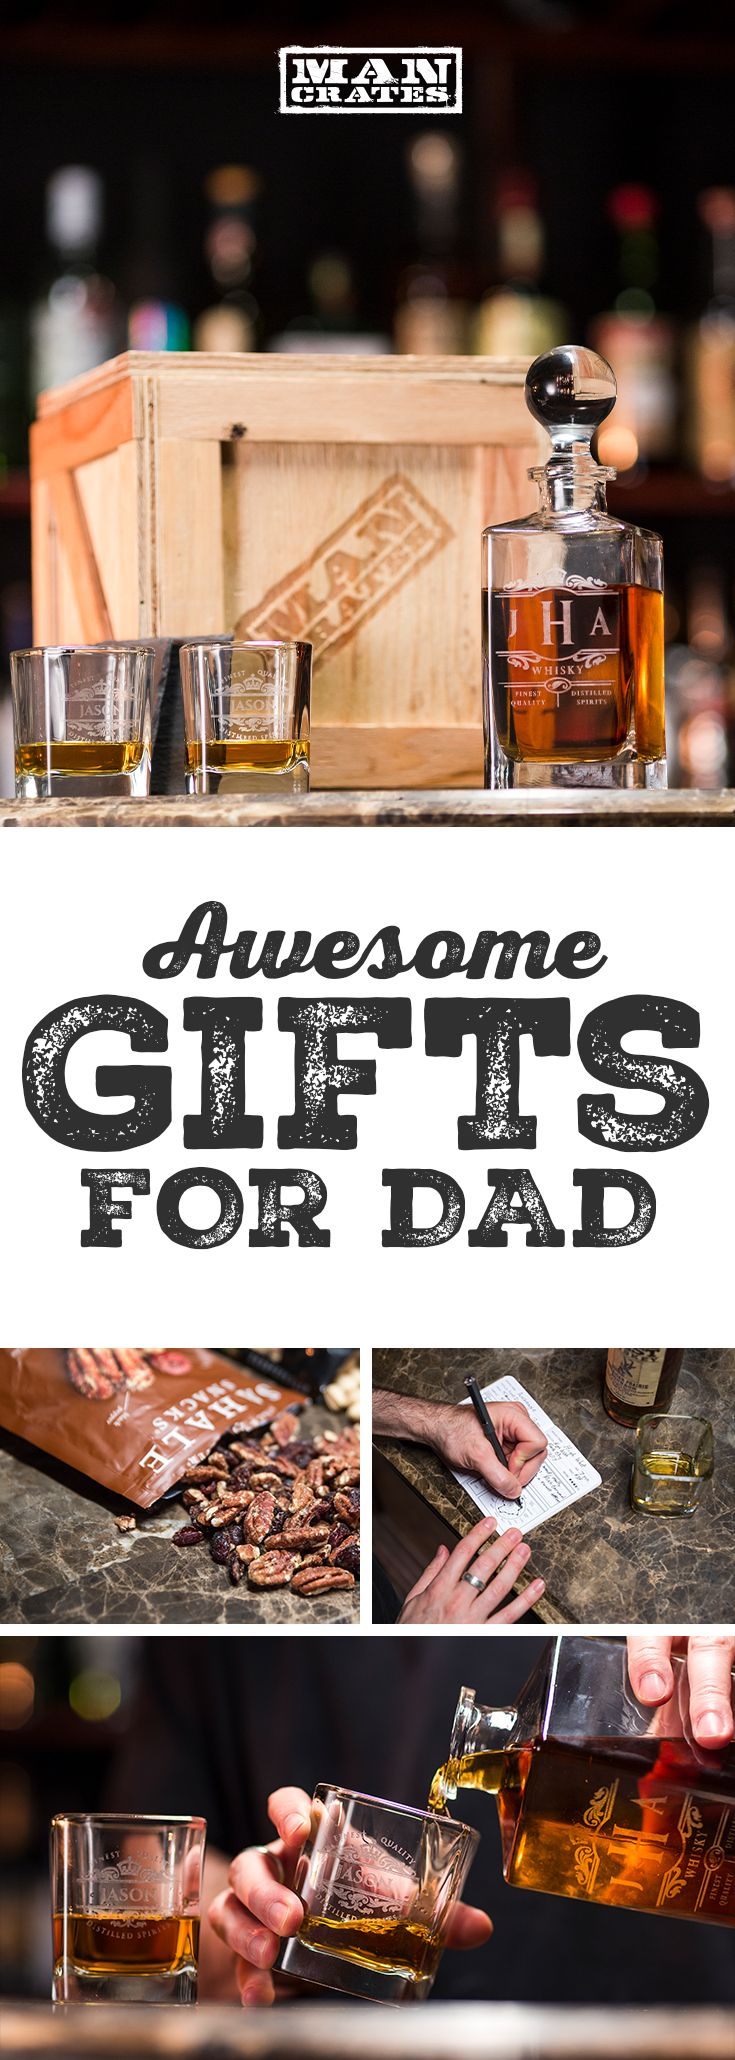 If you're looking for a Father's Day gift guaranteed to delight your dad, look no further. We make unique gift collections designed for all types of guys. Our gifts are built to thrill, and every gift comes with a 100% satisfaction guarantee to ensure your pops has the perfect Father's Day.